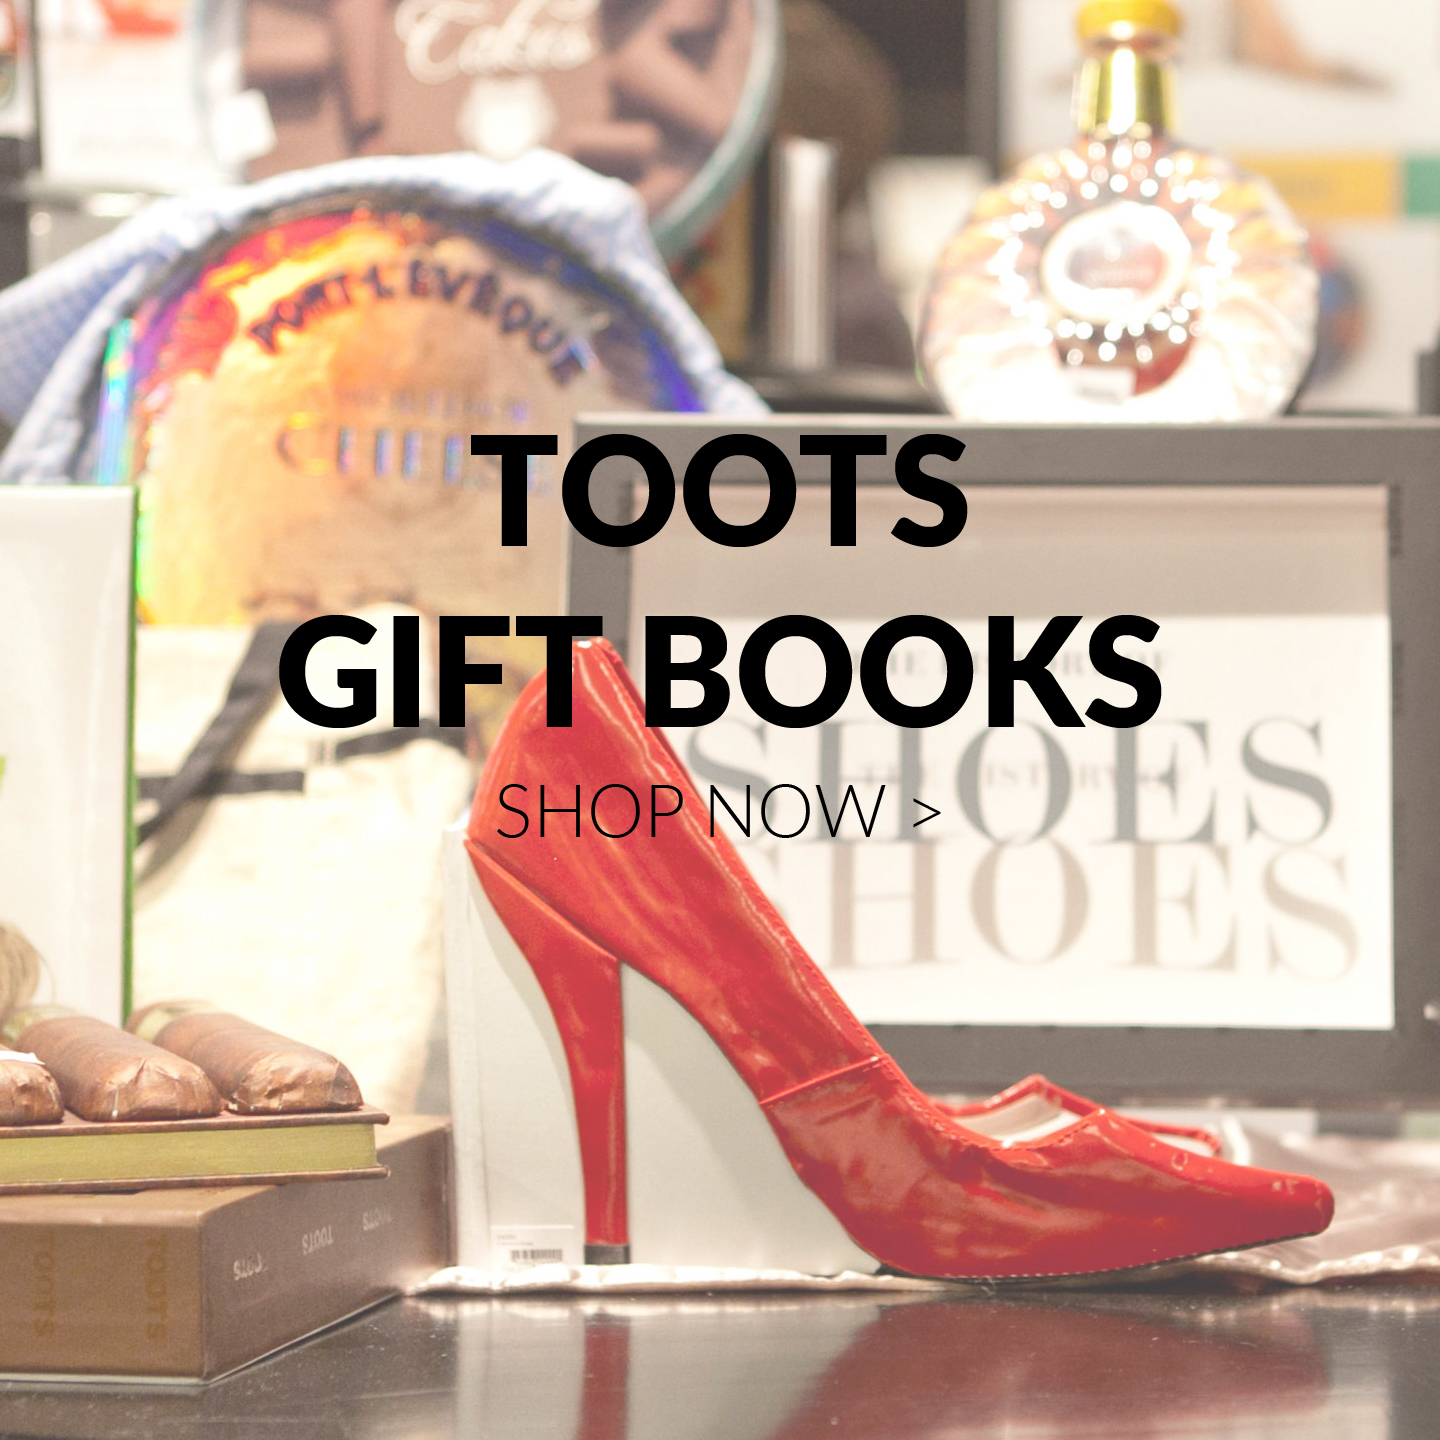 Toots Gift Books by Peter Murray